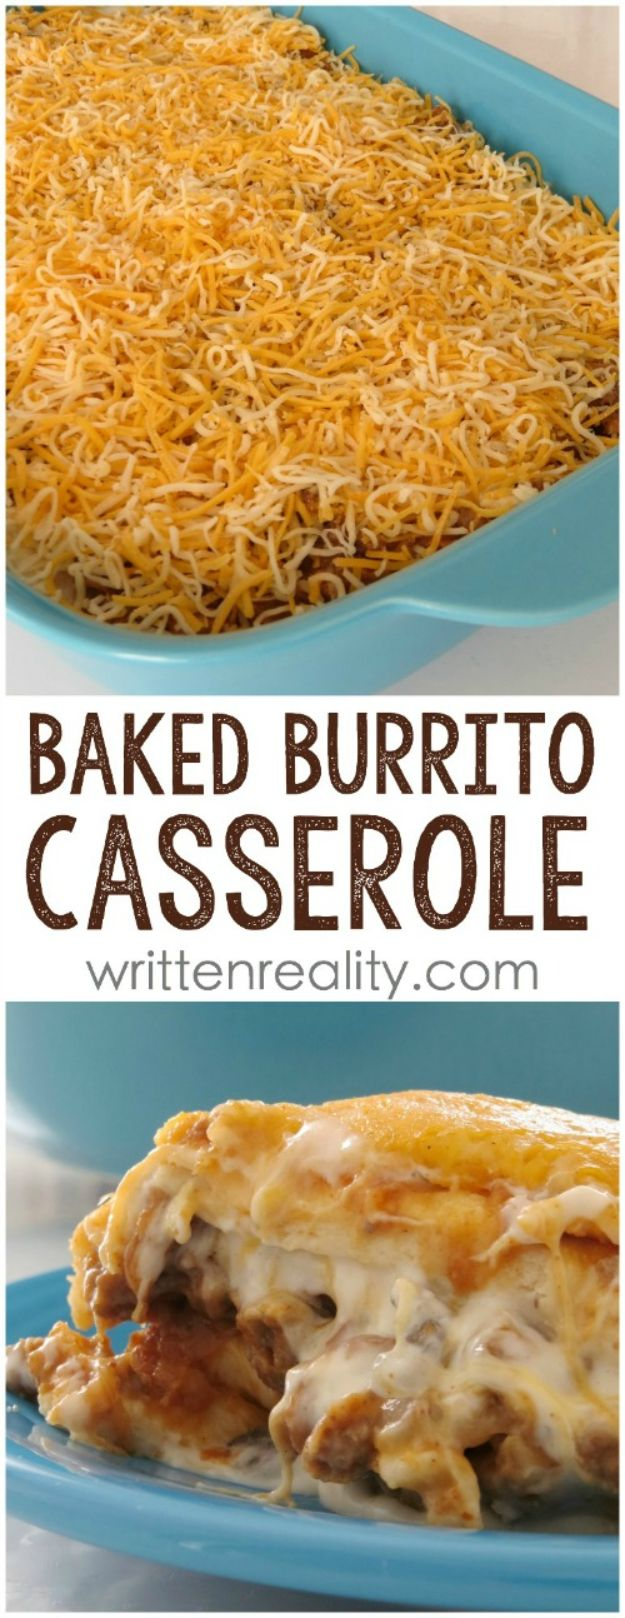 Best Mexican Food Recipes - Baked Burrito Casserole – Homemade Authentic Mexican Version - Mexican Beef Soup - Authentic Mexican Foods and Recipe Ideas for Casseroles, Quesadillas, Tacos, Appetizers, Tamales, Enchiladas, Crockpot, Chicken, Beef and Healthy Foods - Desserts and Dessert Ideas Like Churros , Flan amd Sopapillas #recipes #mexicanfood #mexicanrecipes #recipeideas #mexicandishes http://diyjoy.com/mexican-food-recipes